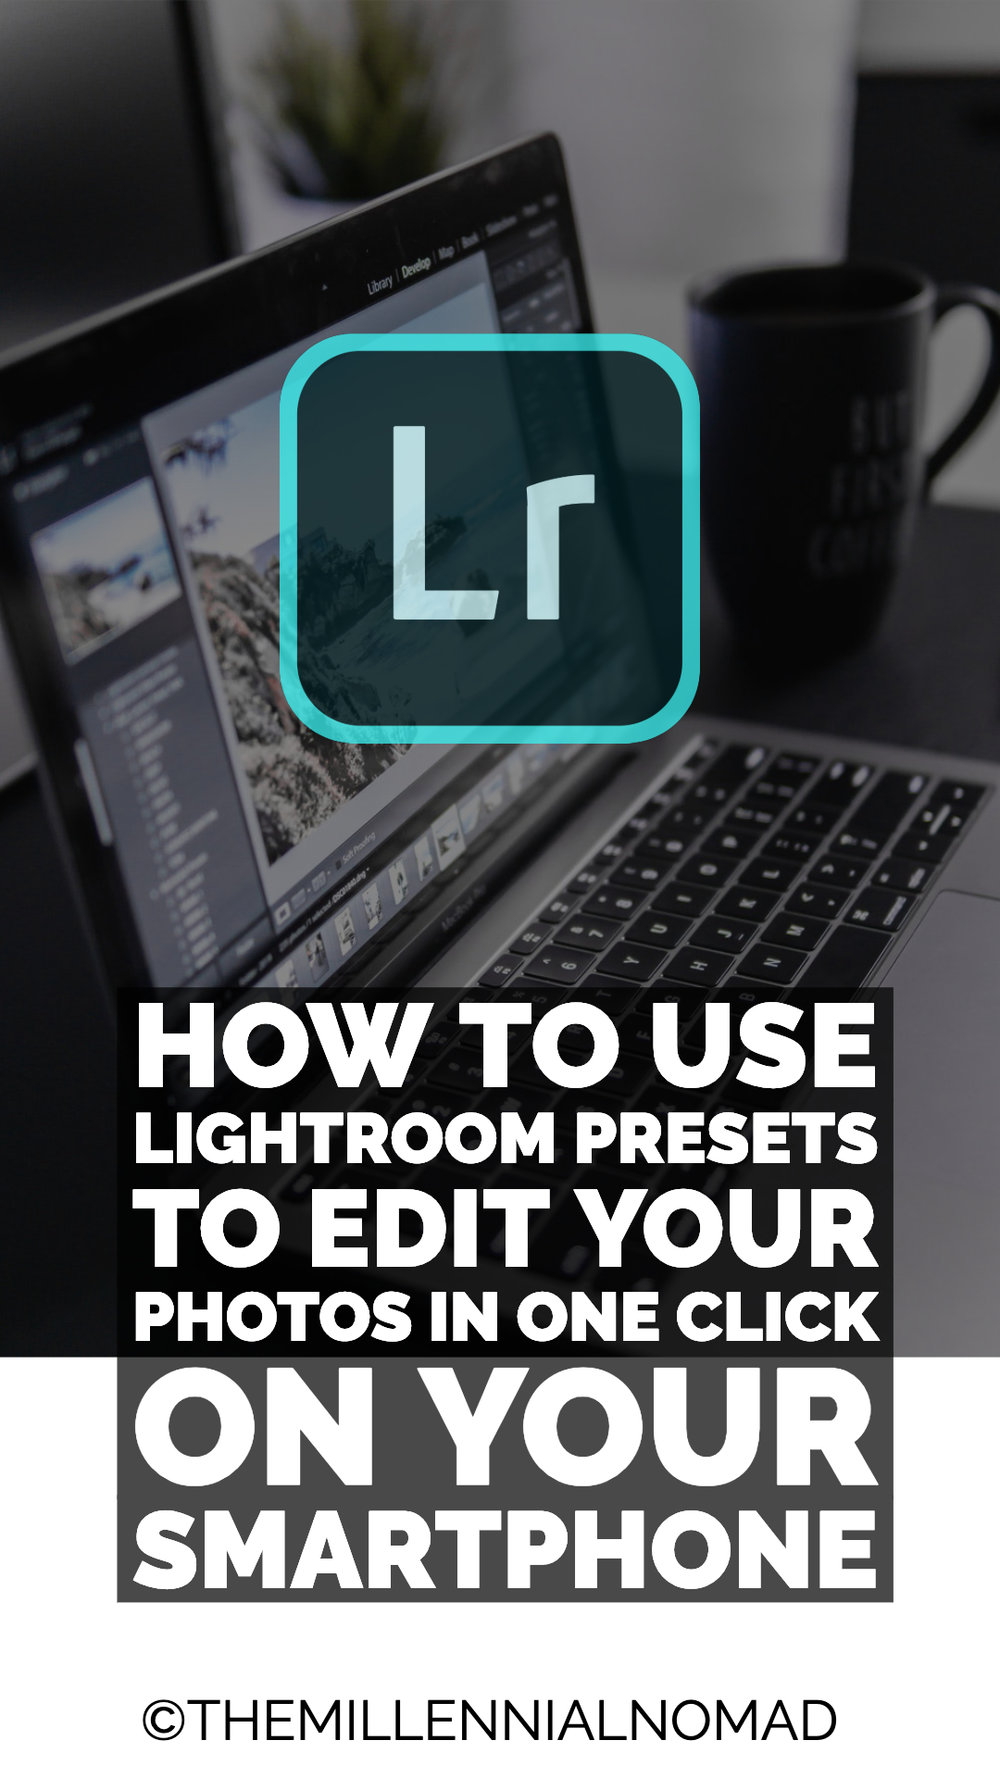 How would you like to be able to edit your photos like a professional directly on your smartphone? This workflow has drastically changed the way I edit my photos on the go and helped me edit way much faster than I used to in the past. Check out how this could help you become a better photographer. #learnphotography #photographyforbeginner #lightroom #lightroomediting #adobe